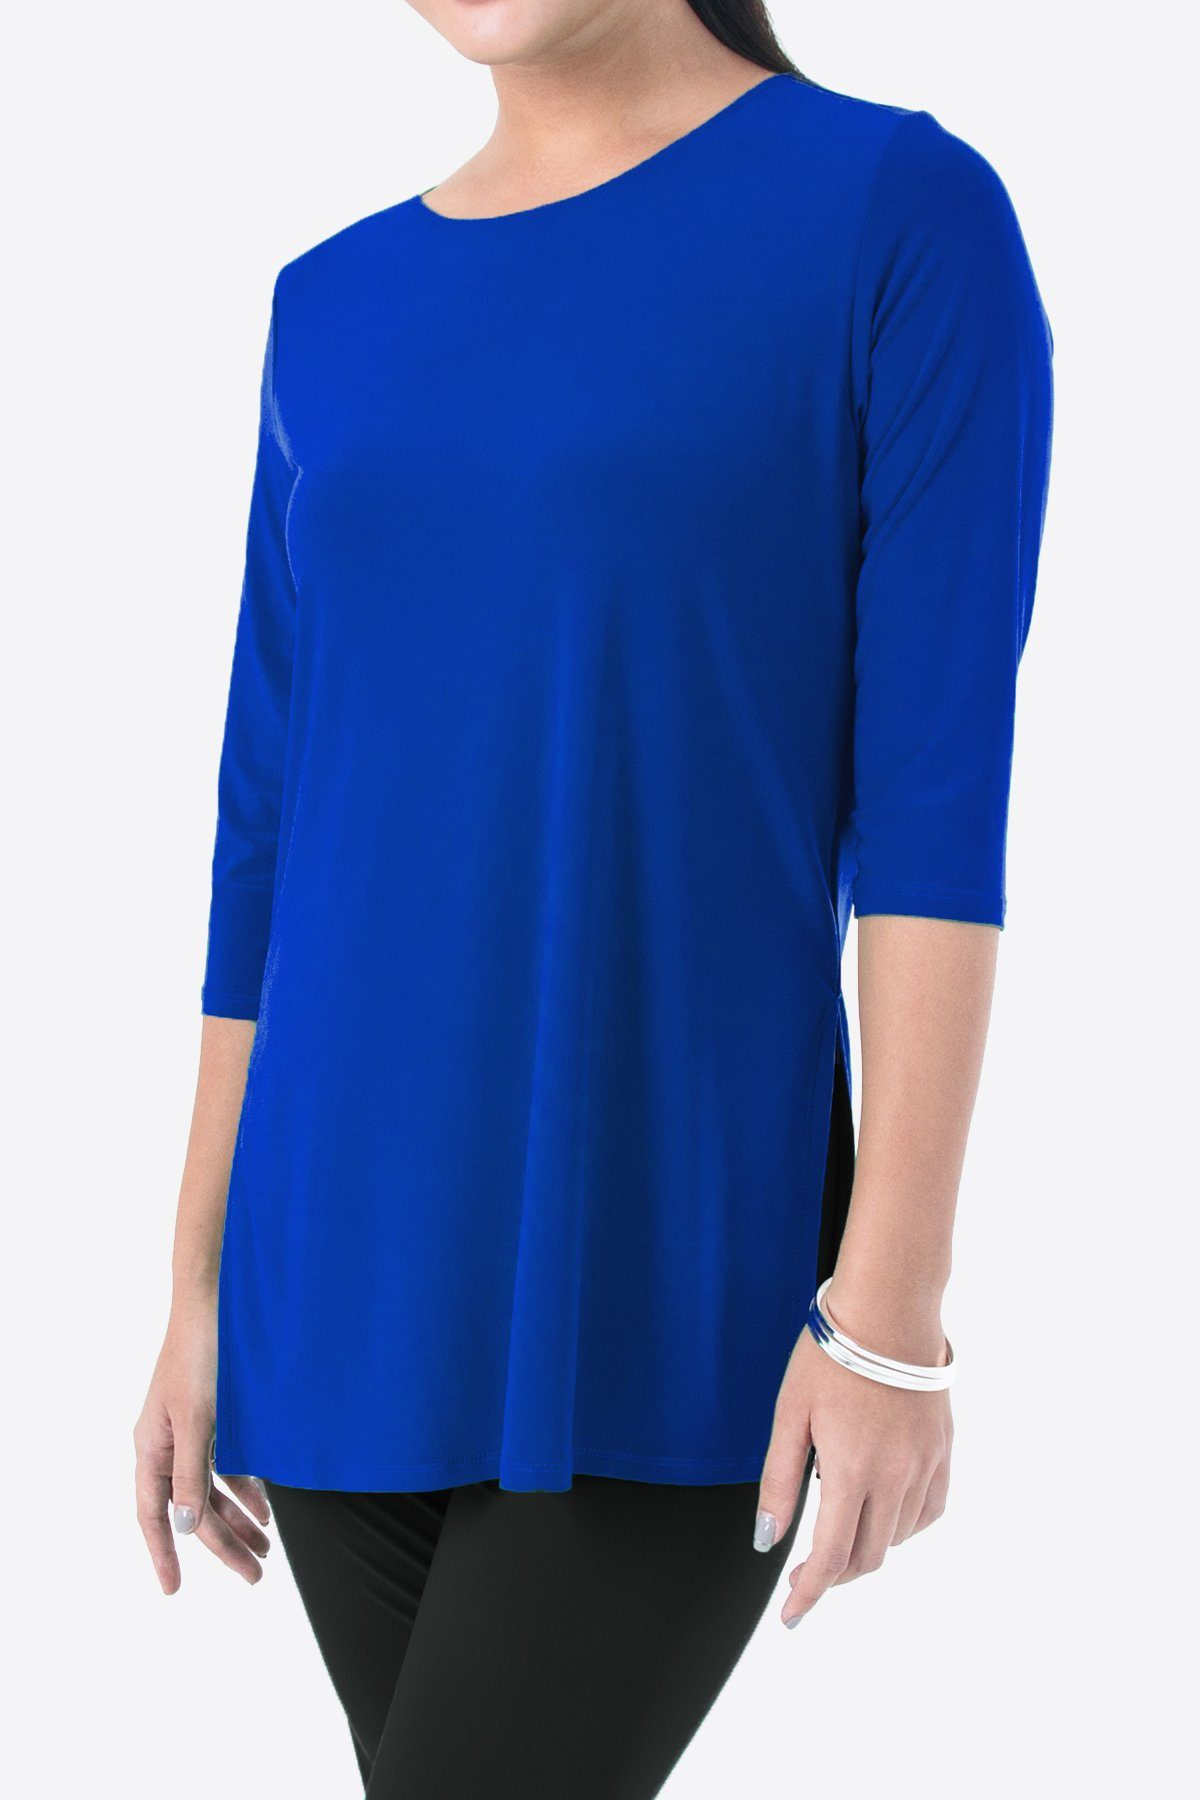 Women's Cobalt Blue 3/4 Sleeve Boat Neck Top with Side Splits Rosarini